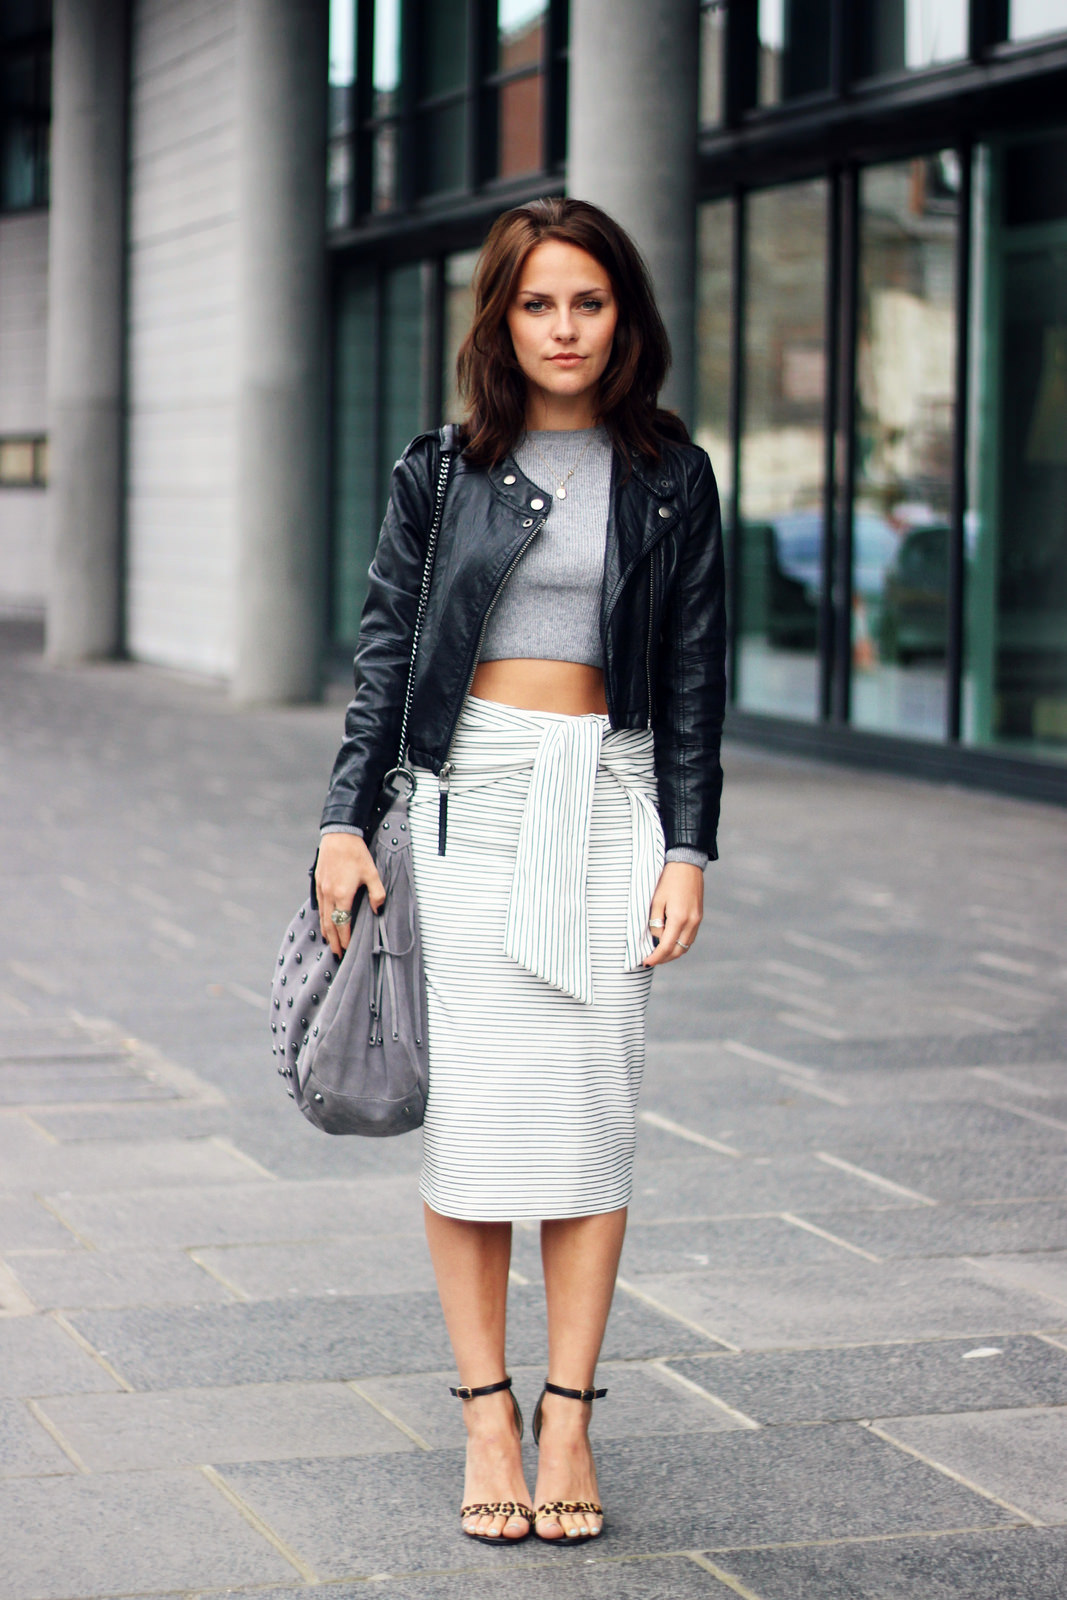 Amy Spencer is sporting one of our favorite modern, below-the-knee pencil skirts featuring pinstripes and a tie-waist. She pairs lighter neutrals (grey, white, and a chunky leopard print heel) together for a city-ready style, while showing off her tan with a cropped jumper. Skirt: Zara, Top: Topshop, Jacket: Topshop, Purse: Paul's Boutique, Shoes: Missguided